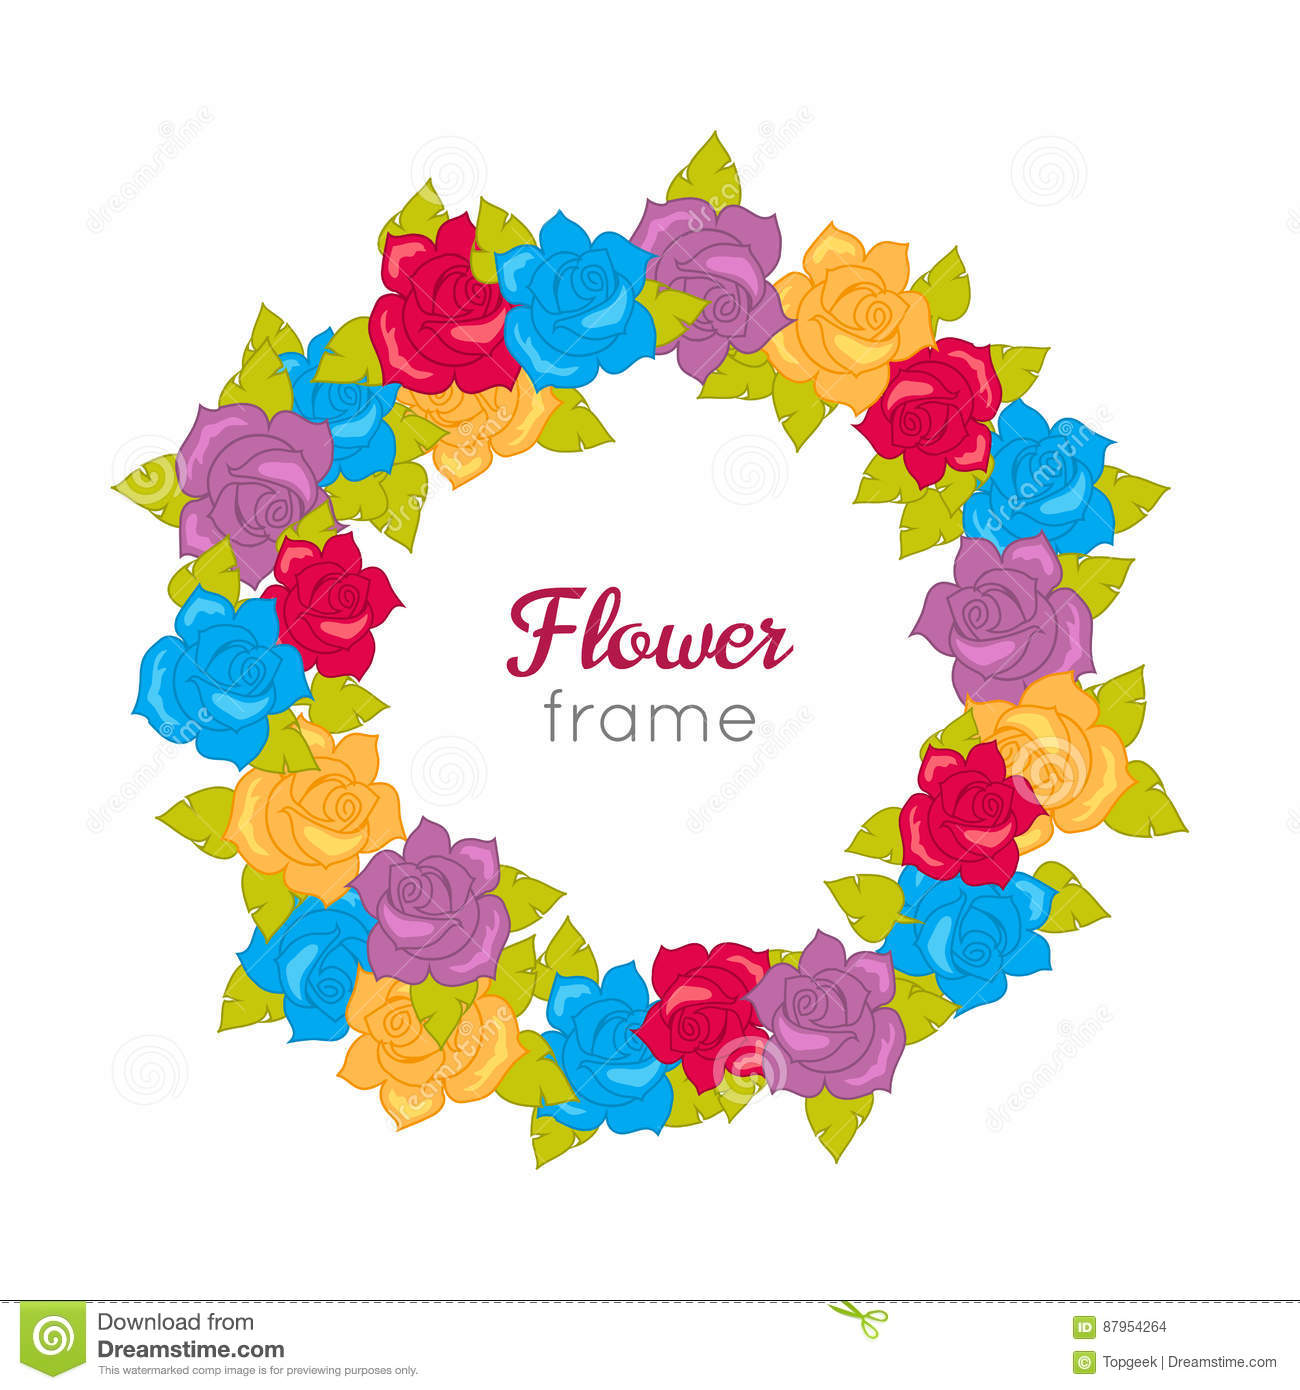 1b8f8694d9 Flower frame. Circle wreath of different blossoms. Green leaves. Colourful  selection of flowers on white. Blue purple yellow red roses. Decoration.